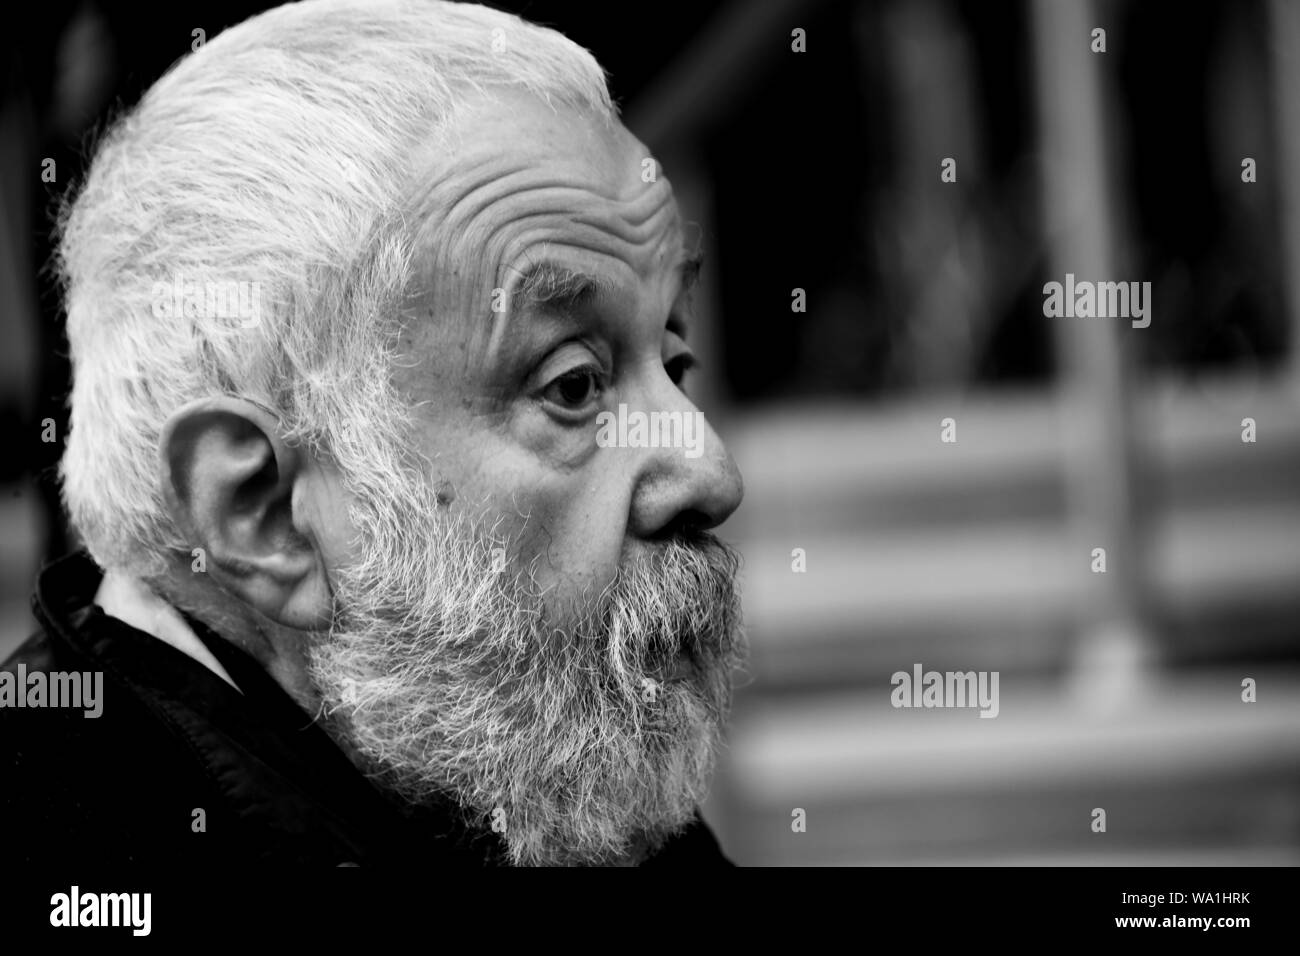 Transmitted Black and White Stock Photos & Images - Alamy